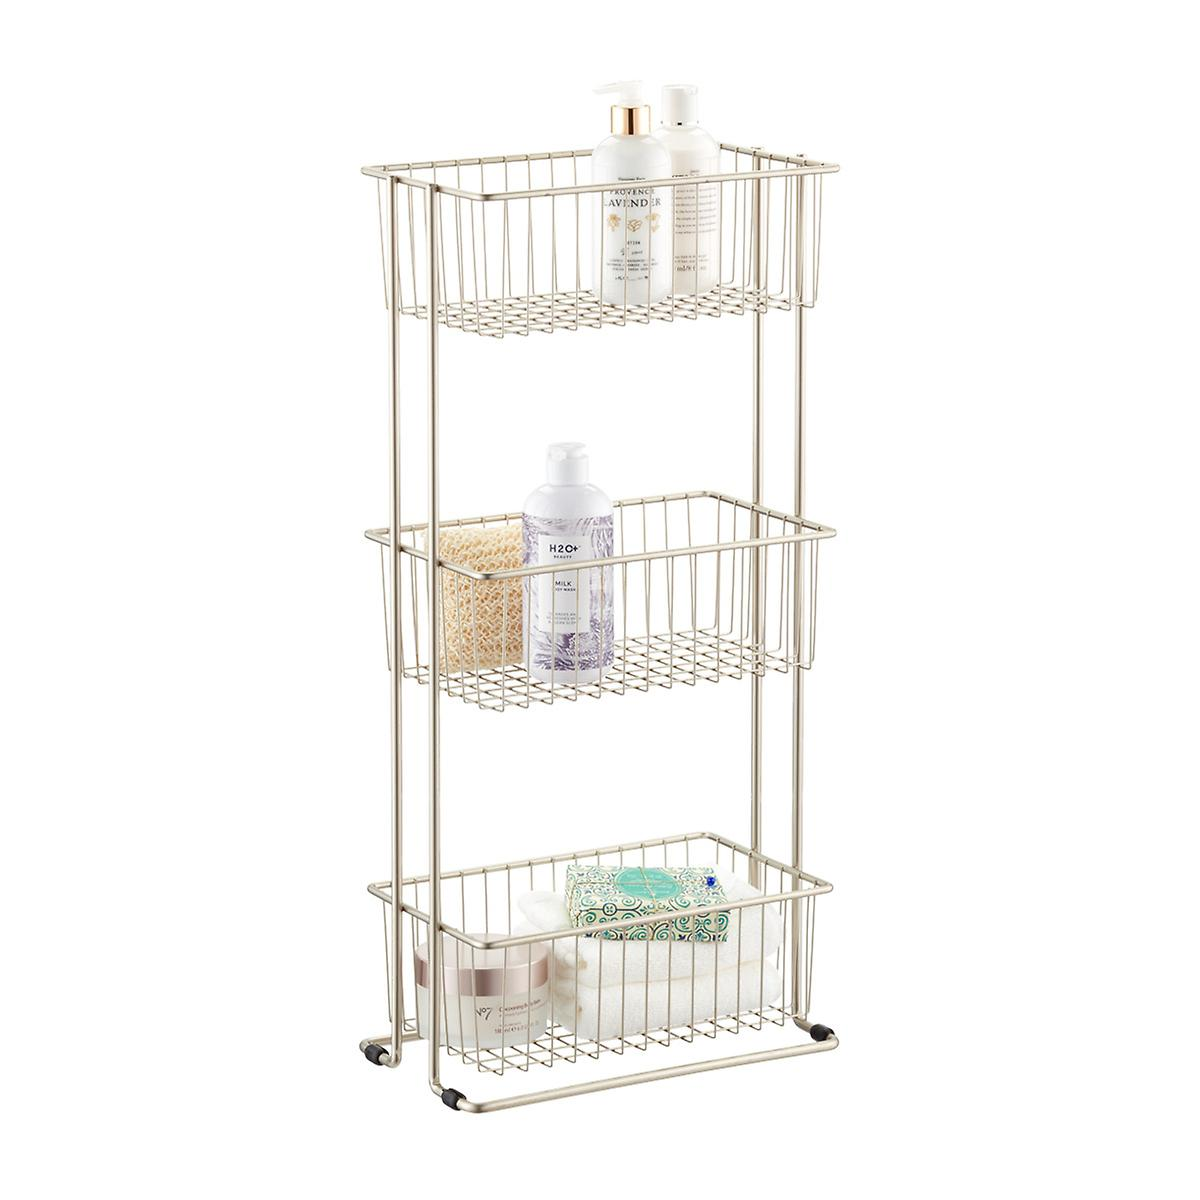 Satin Nickel 3-Tier Shelf Basket Tower | The Container Store